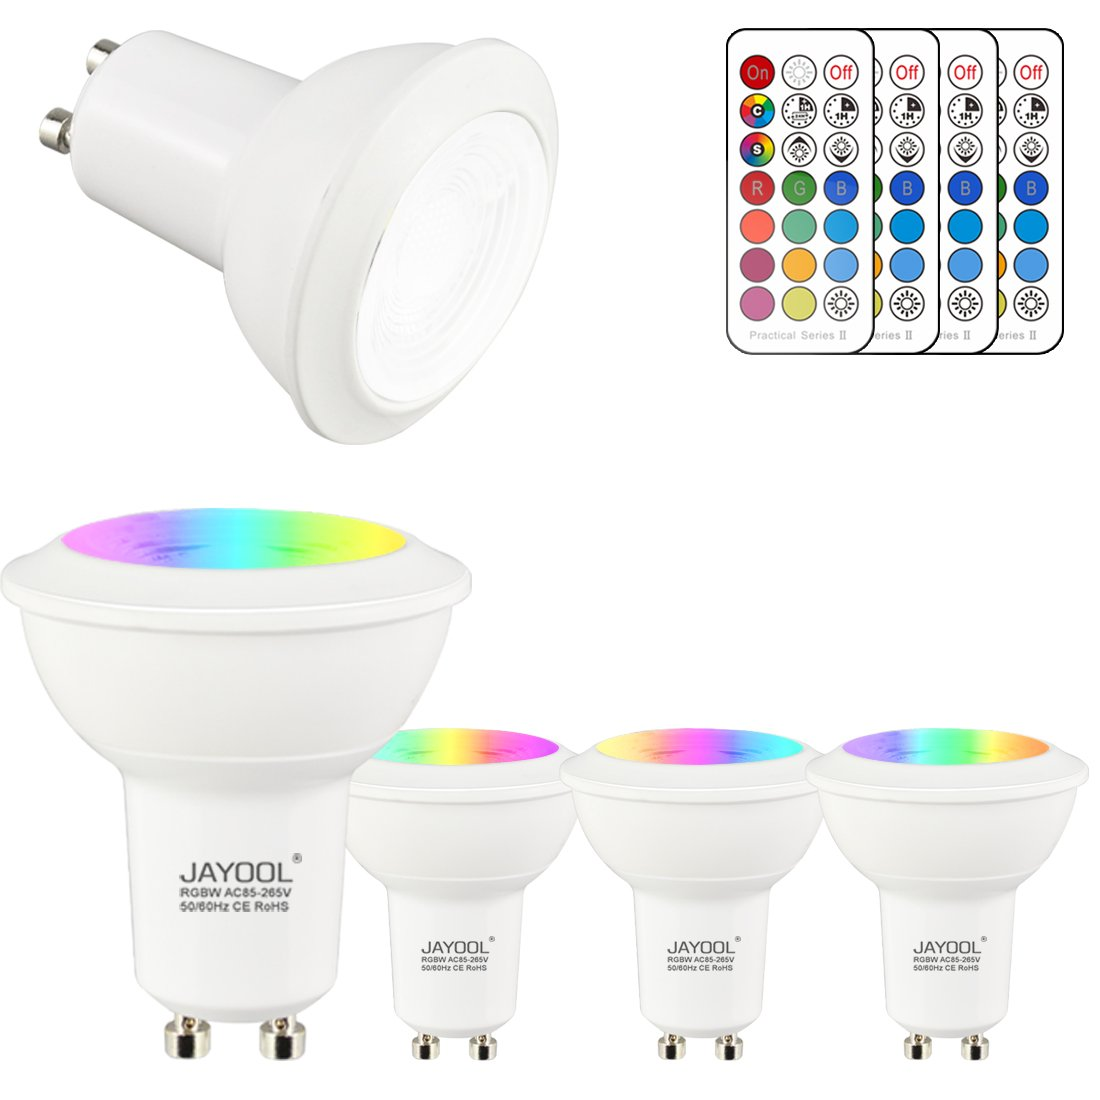 Jayool 2.4G RF B22 LED Light Bulb, Dimmable Colour Changing Light Bulb Bayonet with Remote Control (4-Zone), 1 Million Colour Choices, RGB+Daylight White (2 Pack)